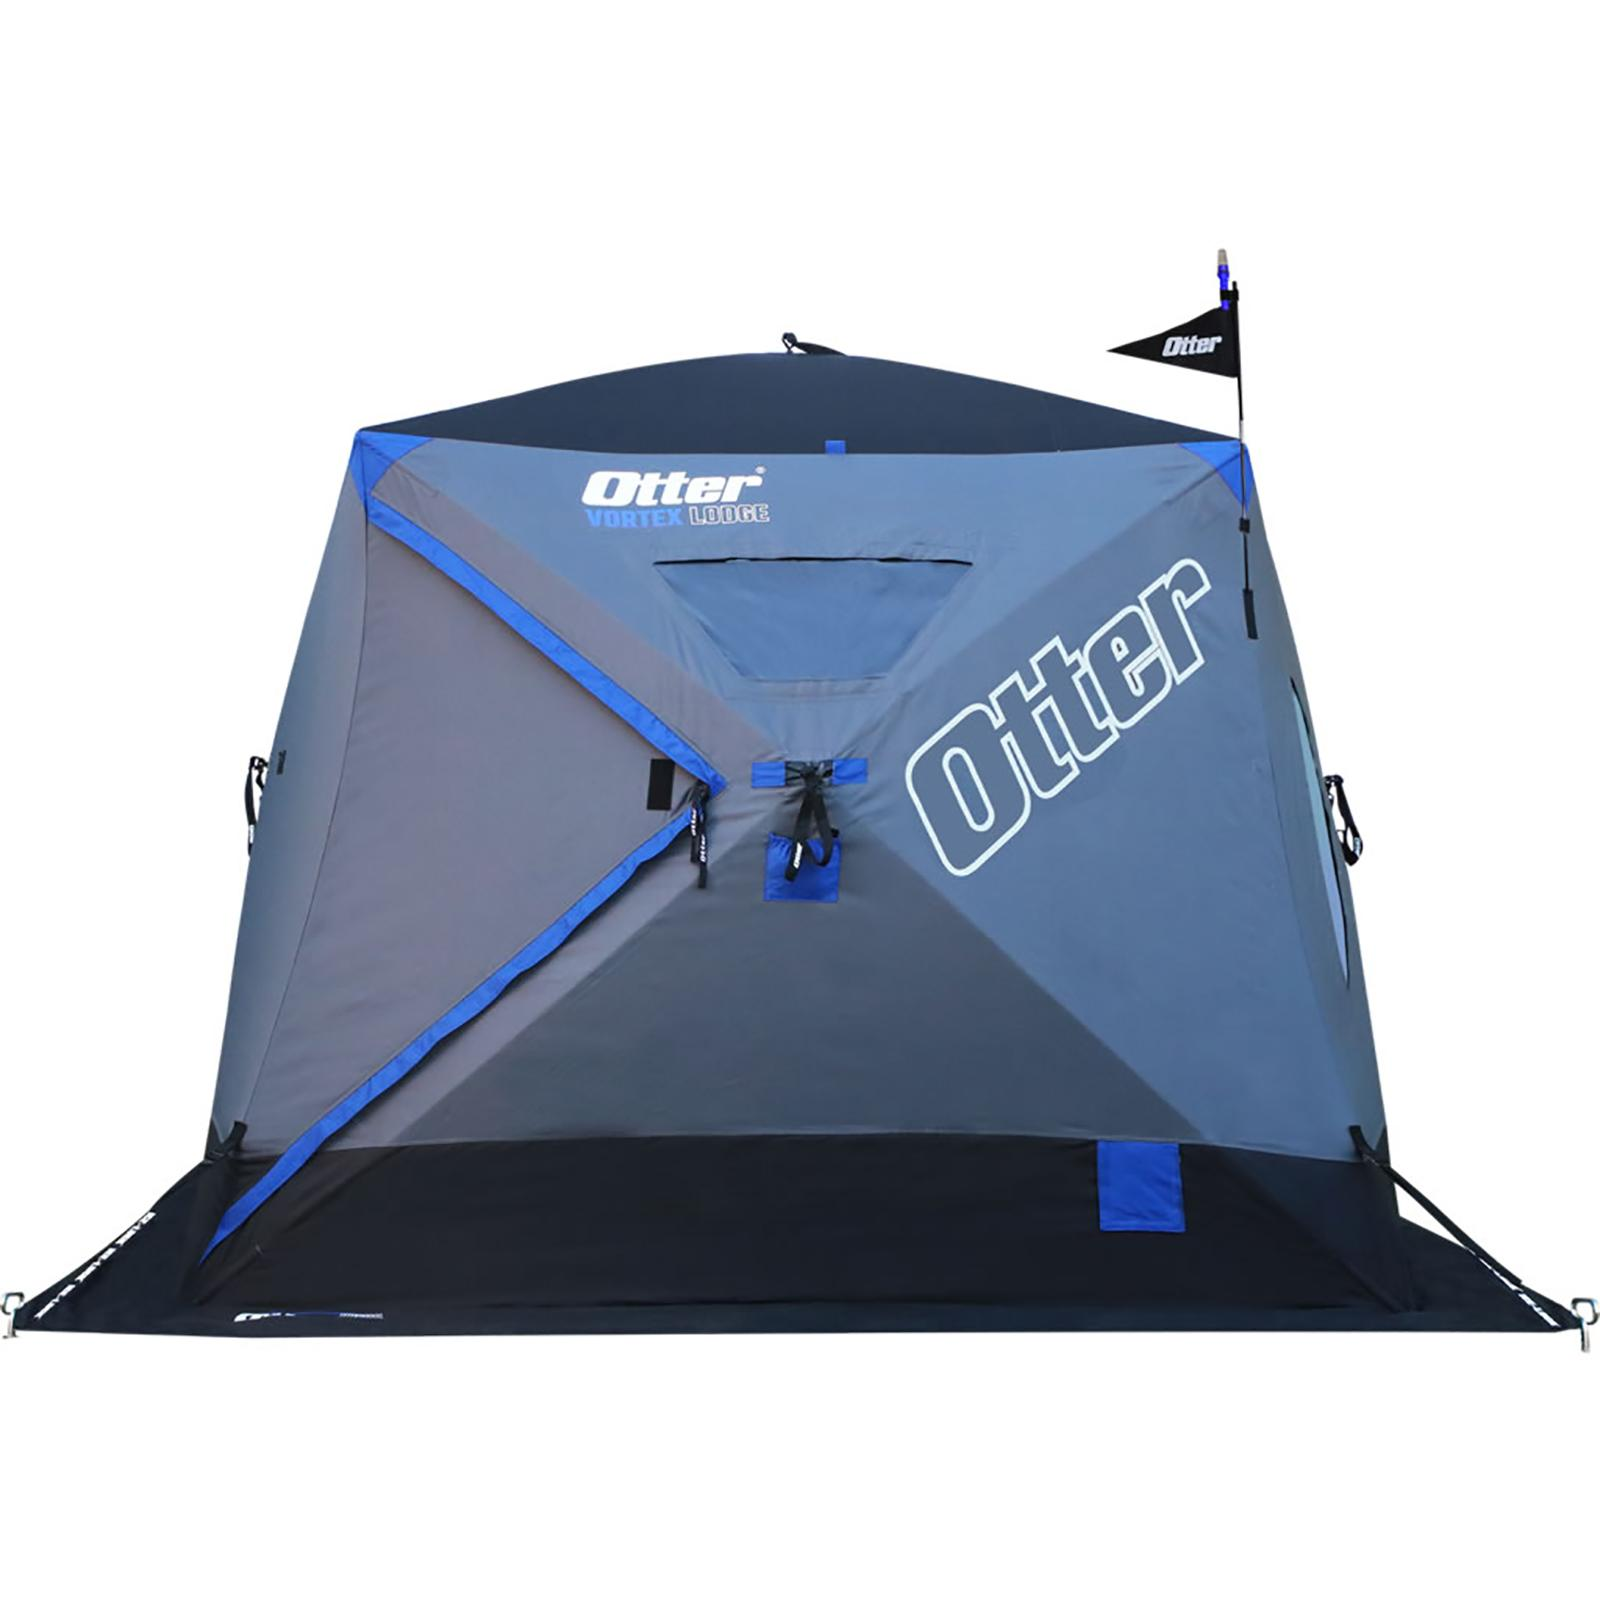 Otter Outdoors VORTEX Thermal Hub Ice Shelter Lodge